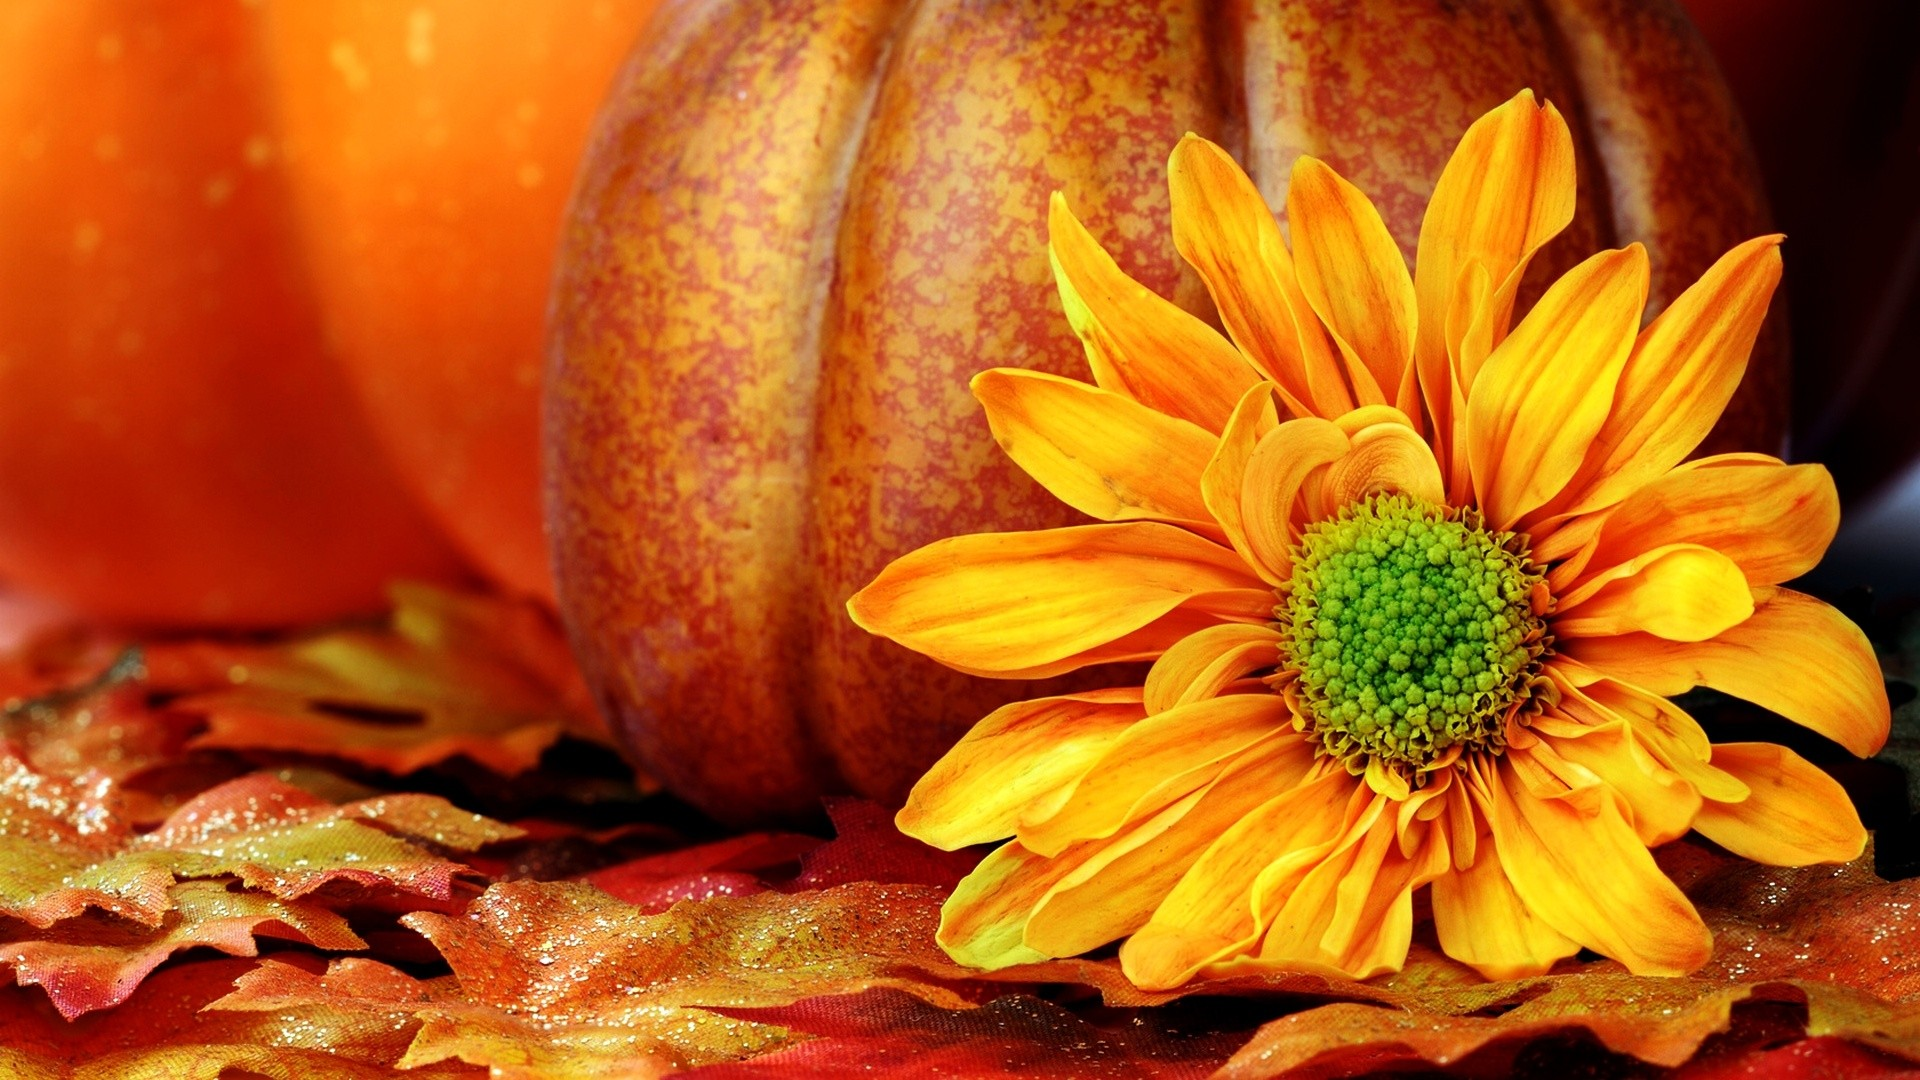 Backgrounds For 3d Fall Pumpkin Desktop Backgrounds Www .